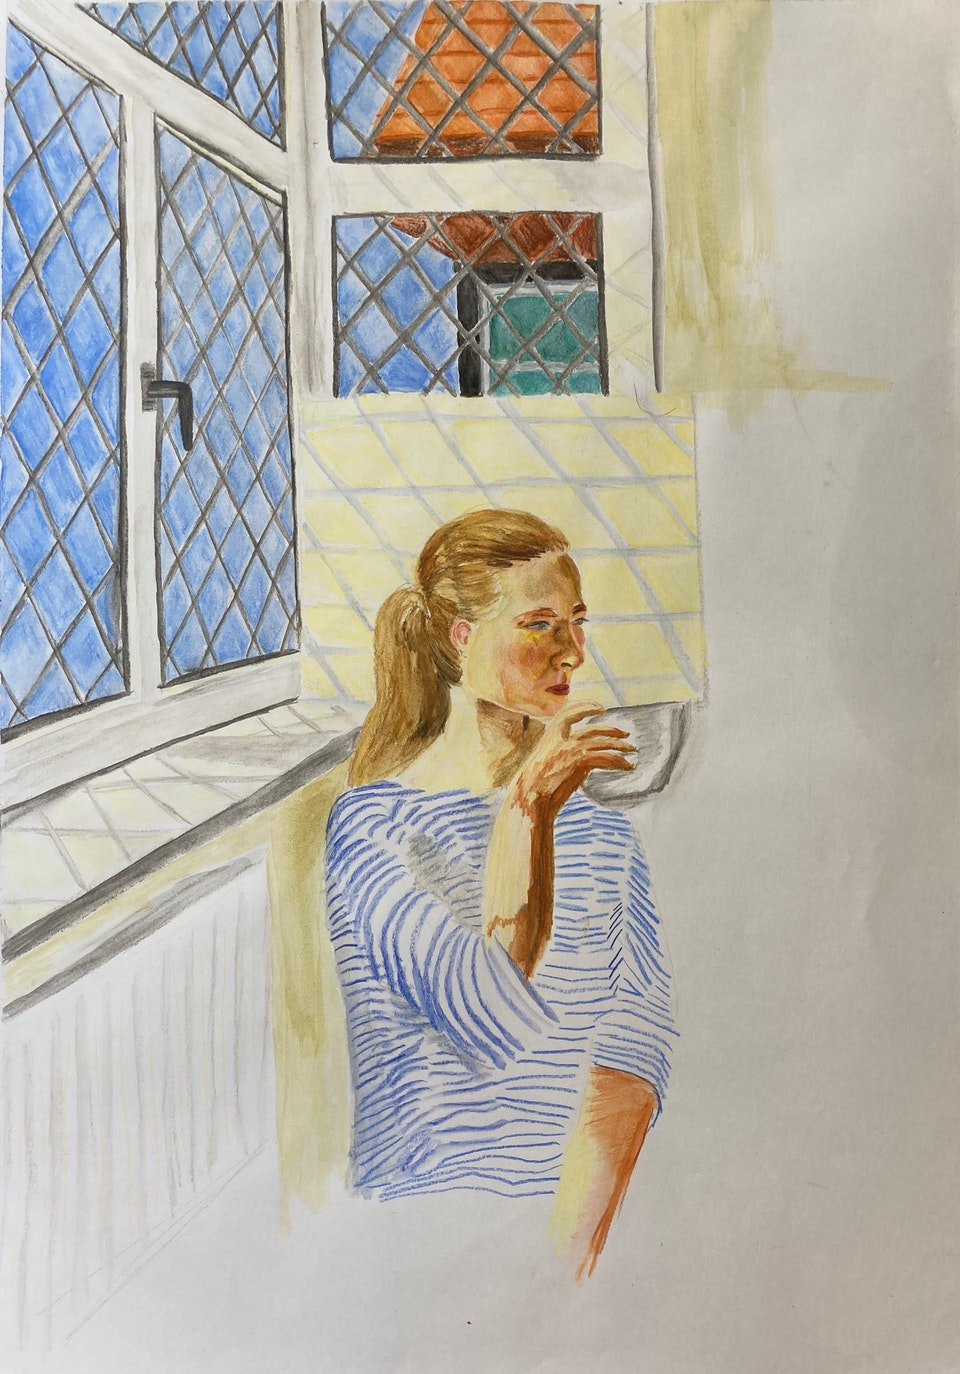 Everyday - Coffee in the Window - 2020 - Watercolour Pencil and Watercolour on Paper - 30 x 42 cm